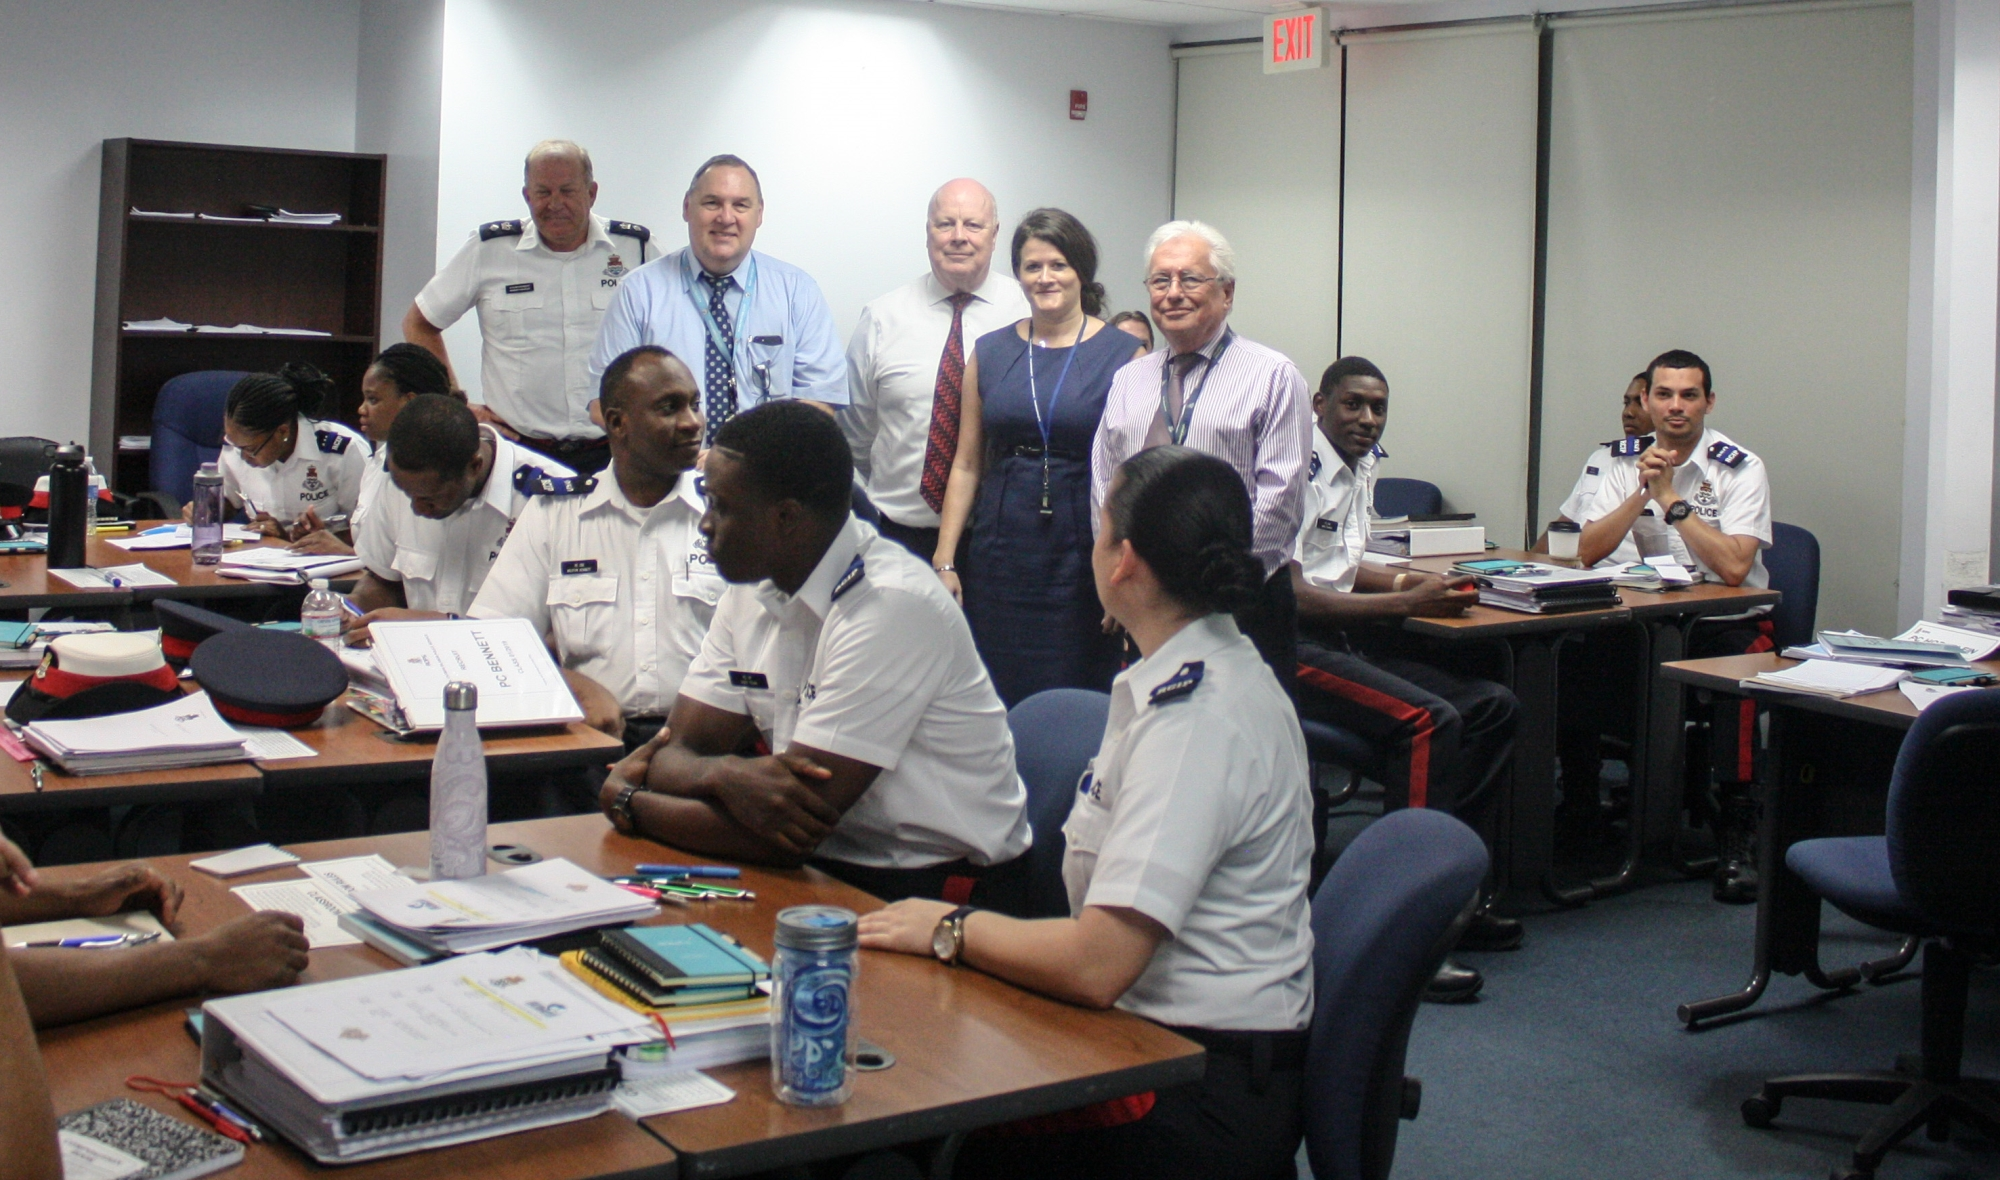 The recruit class along with presenters from PoCS, the ODPP, Office of the Ombudsman, and Supt. Robert Graham